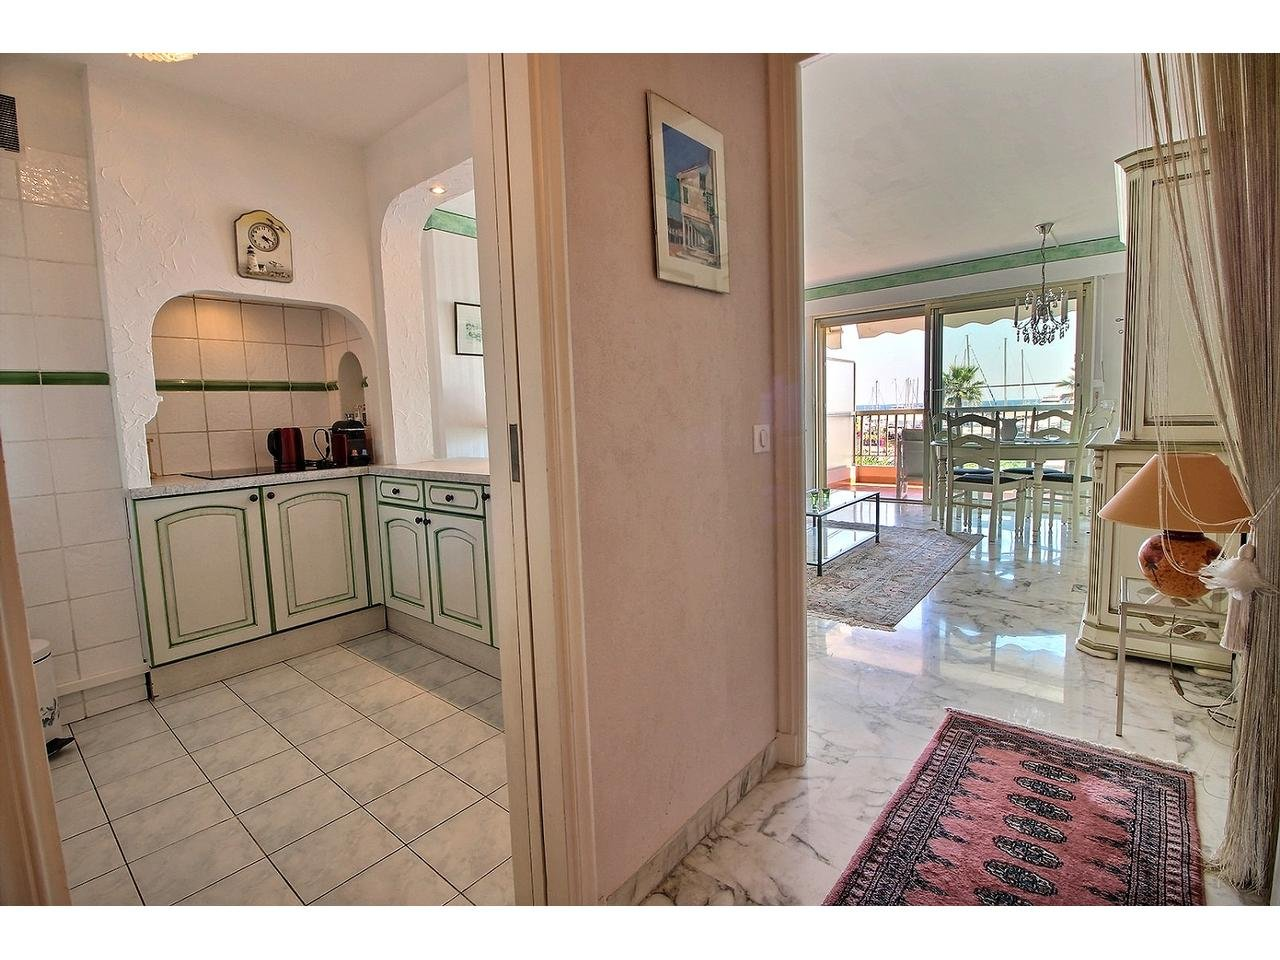 Appartement  2 Rooms 55m2  for sale   479 000 €